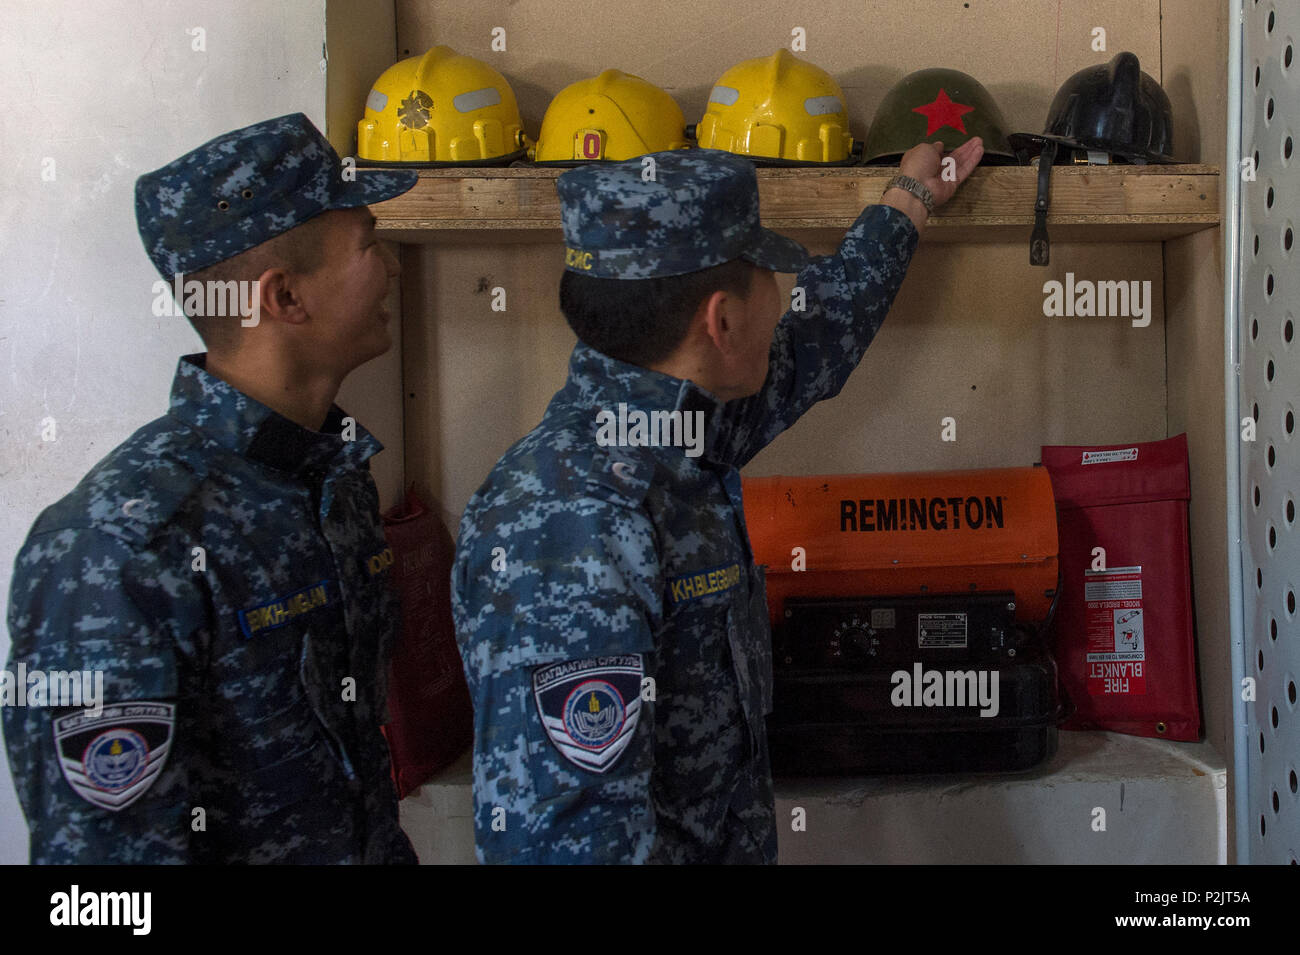 Two Mongolian emergency management cadets look at a Soviet Union helmet during a Disaster Management Leadership Seminar in Ulaanbaatar, Mongolia, Sept. 21, 2016. The five-day seminar is a subject matter expert exchange between the U.S. and Mongolia. The Mongolia National Emergency Management Agency hosted the exchange, partnering with U.S. service members from Special Operations Command, Pacific. The participants exchanged information on a variety of topics including disaster response management, human rights, displaced persons, incident command system, mass casualty incident management, crisi - Stock Image